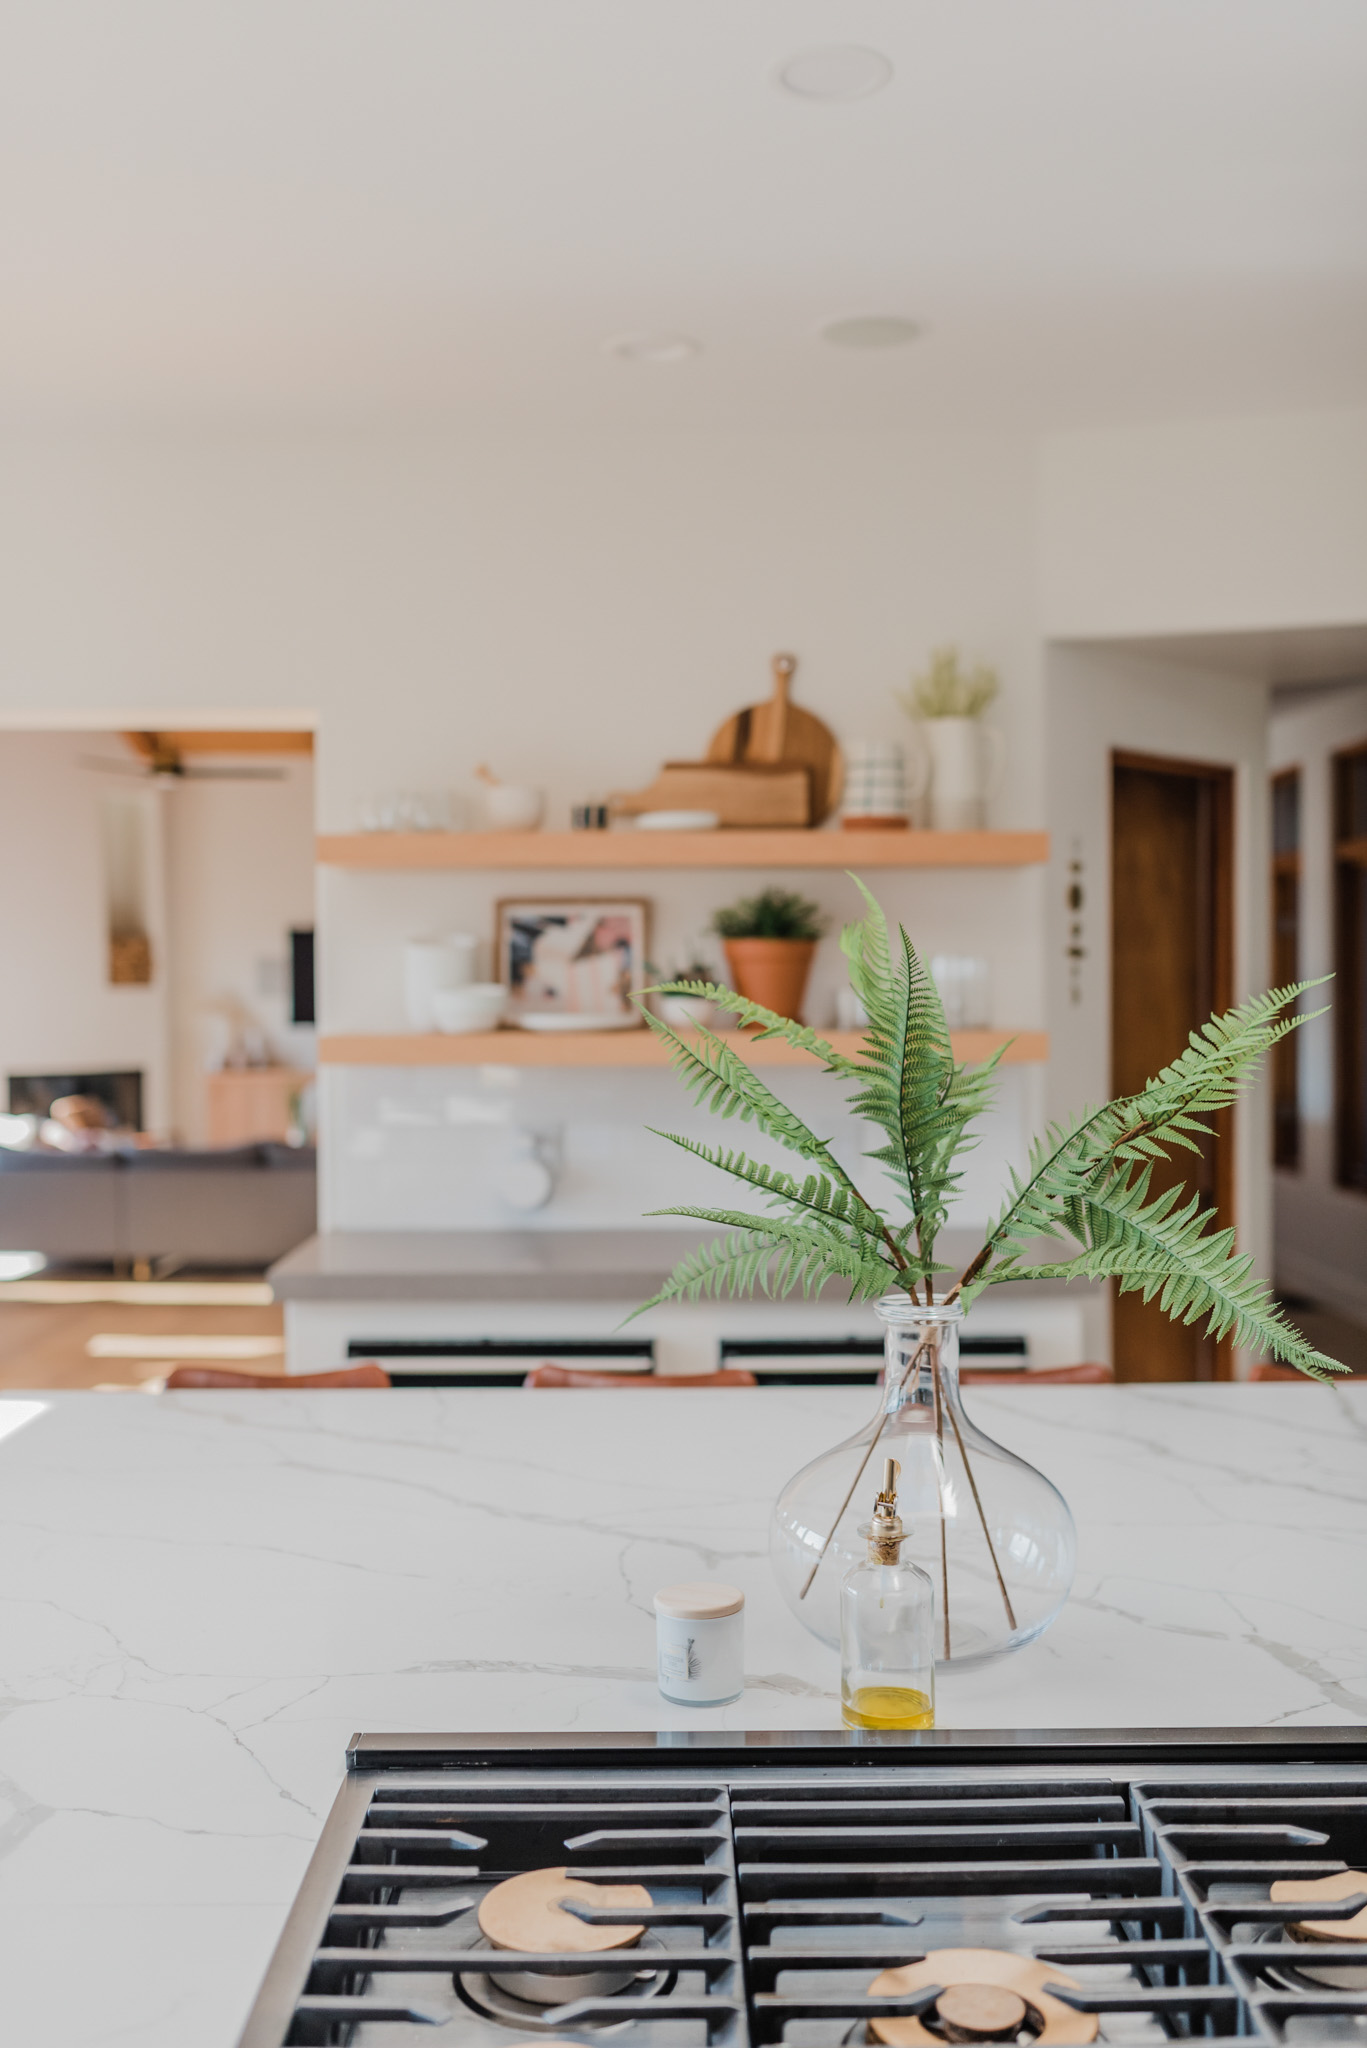 Spring Kitchen Wishlist by popular San Diego life and style blog, Navy Grace: image of a modern kitchen with marble counter tops, gas cooking range, floating wood shelves, leather barstools, and a clear glass vase with fern stems in it.